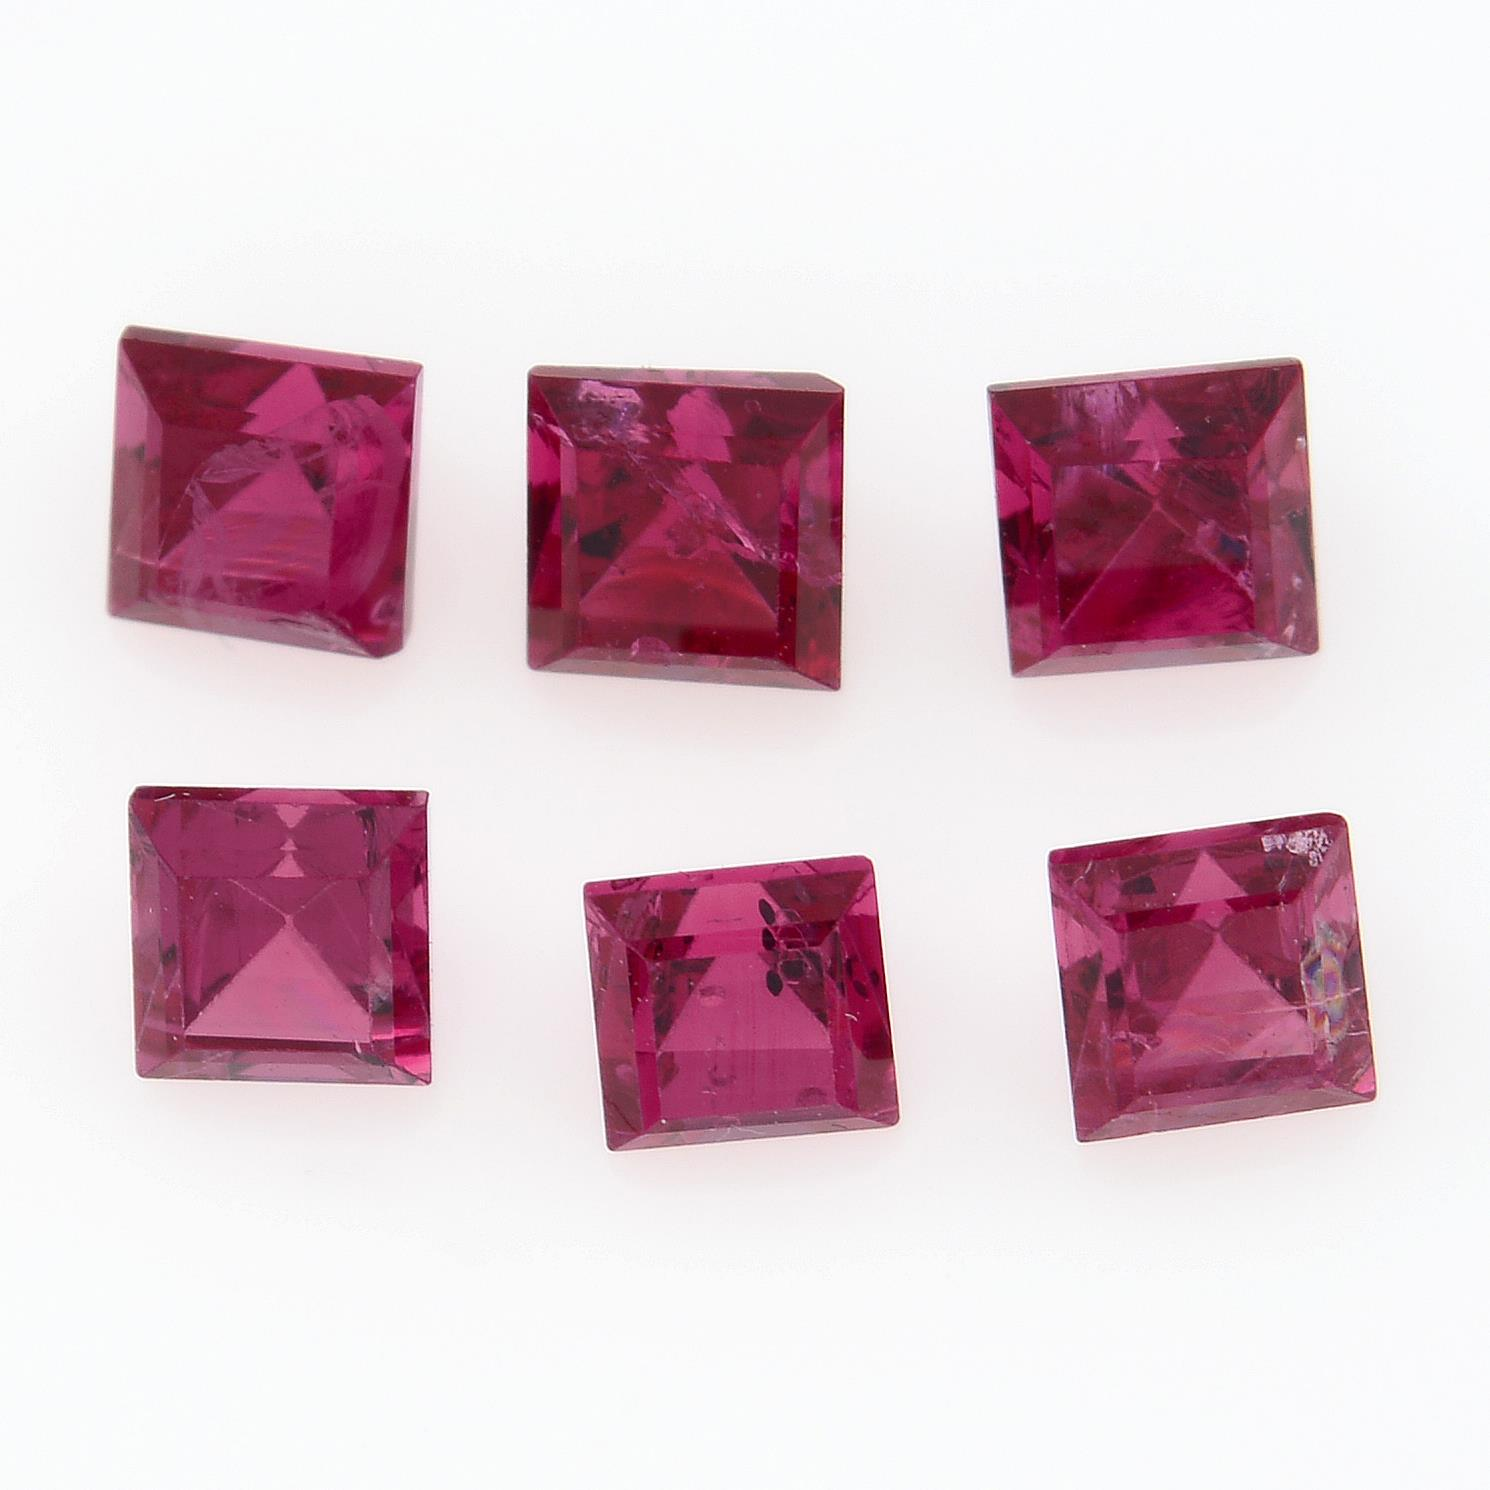 Six square shape spinels, weighing 1.86ct.